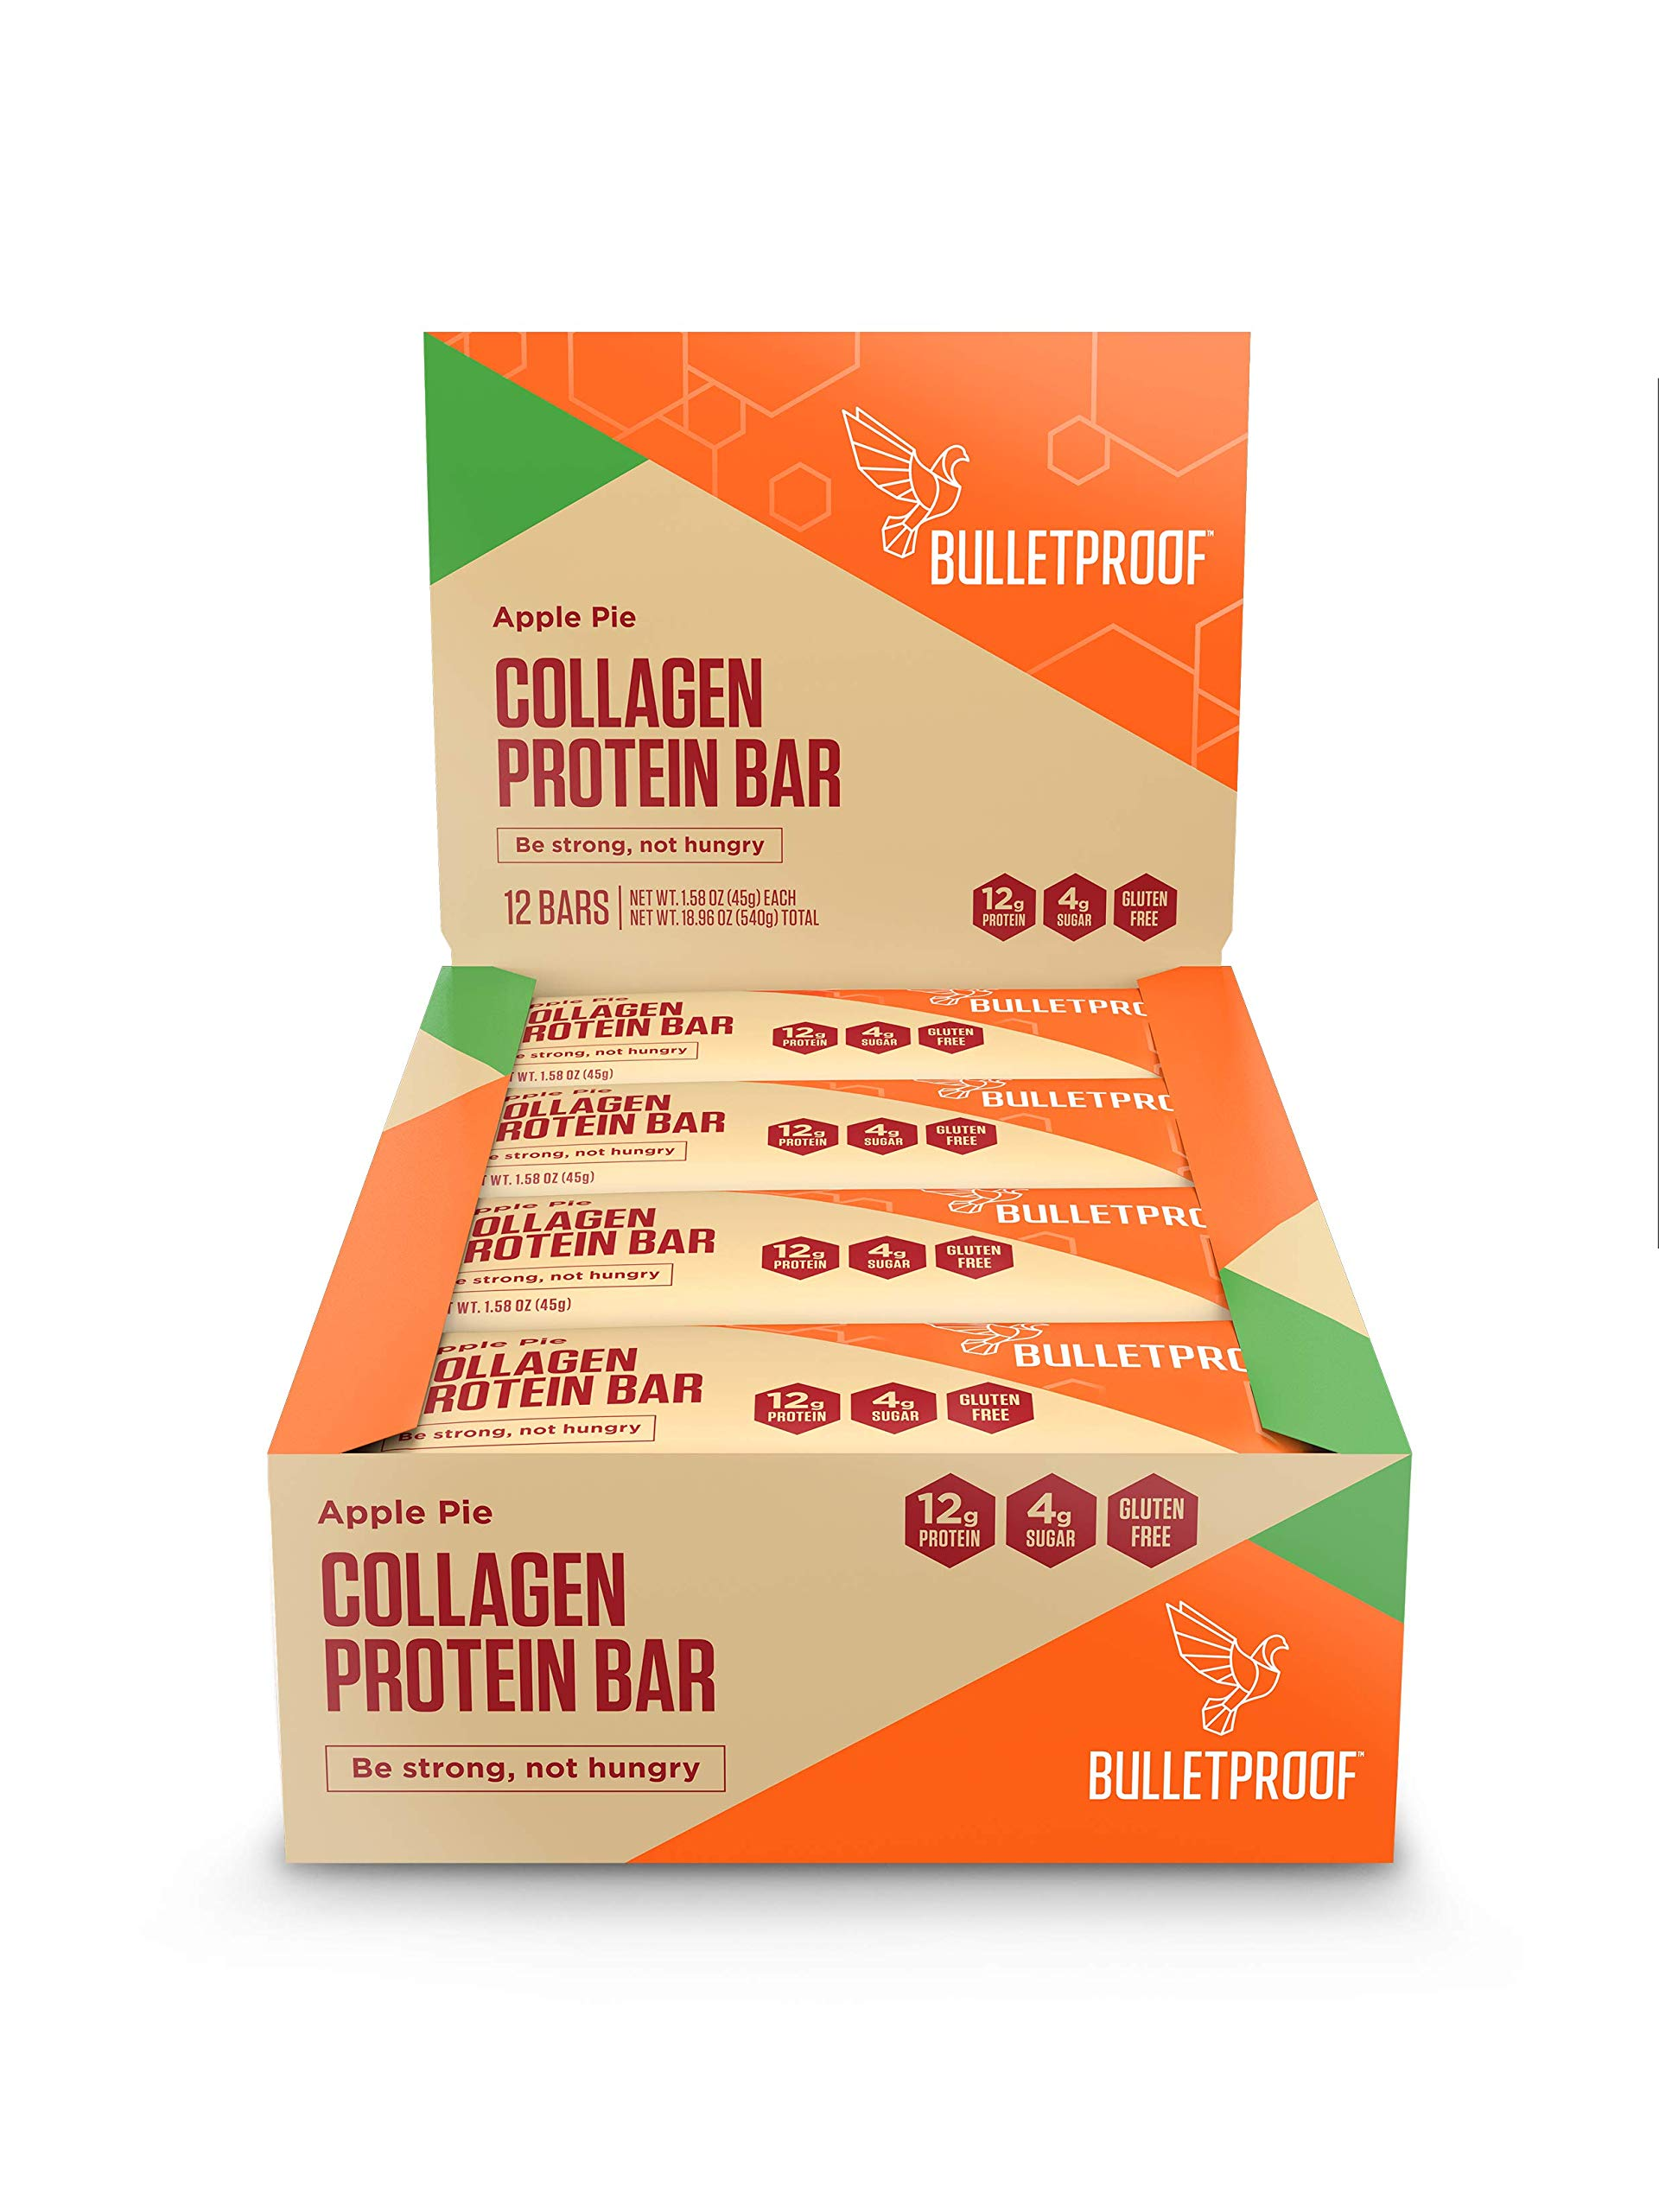 Bulletproof Collagen Protein Bars, Keto Friendly, Travel Friendly, Snack Strong not Hungry (Apple Pie)